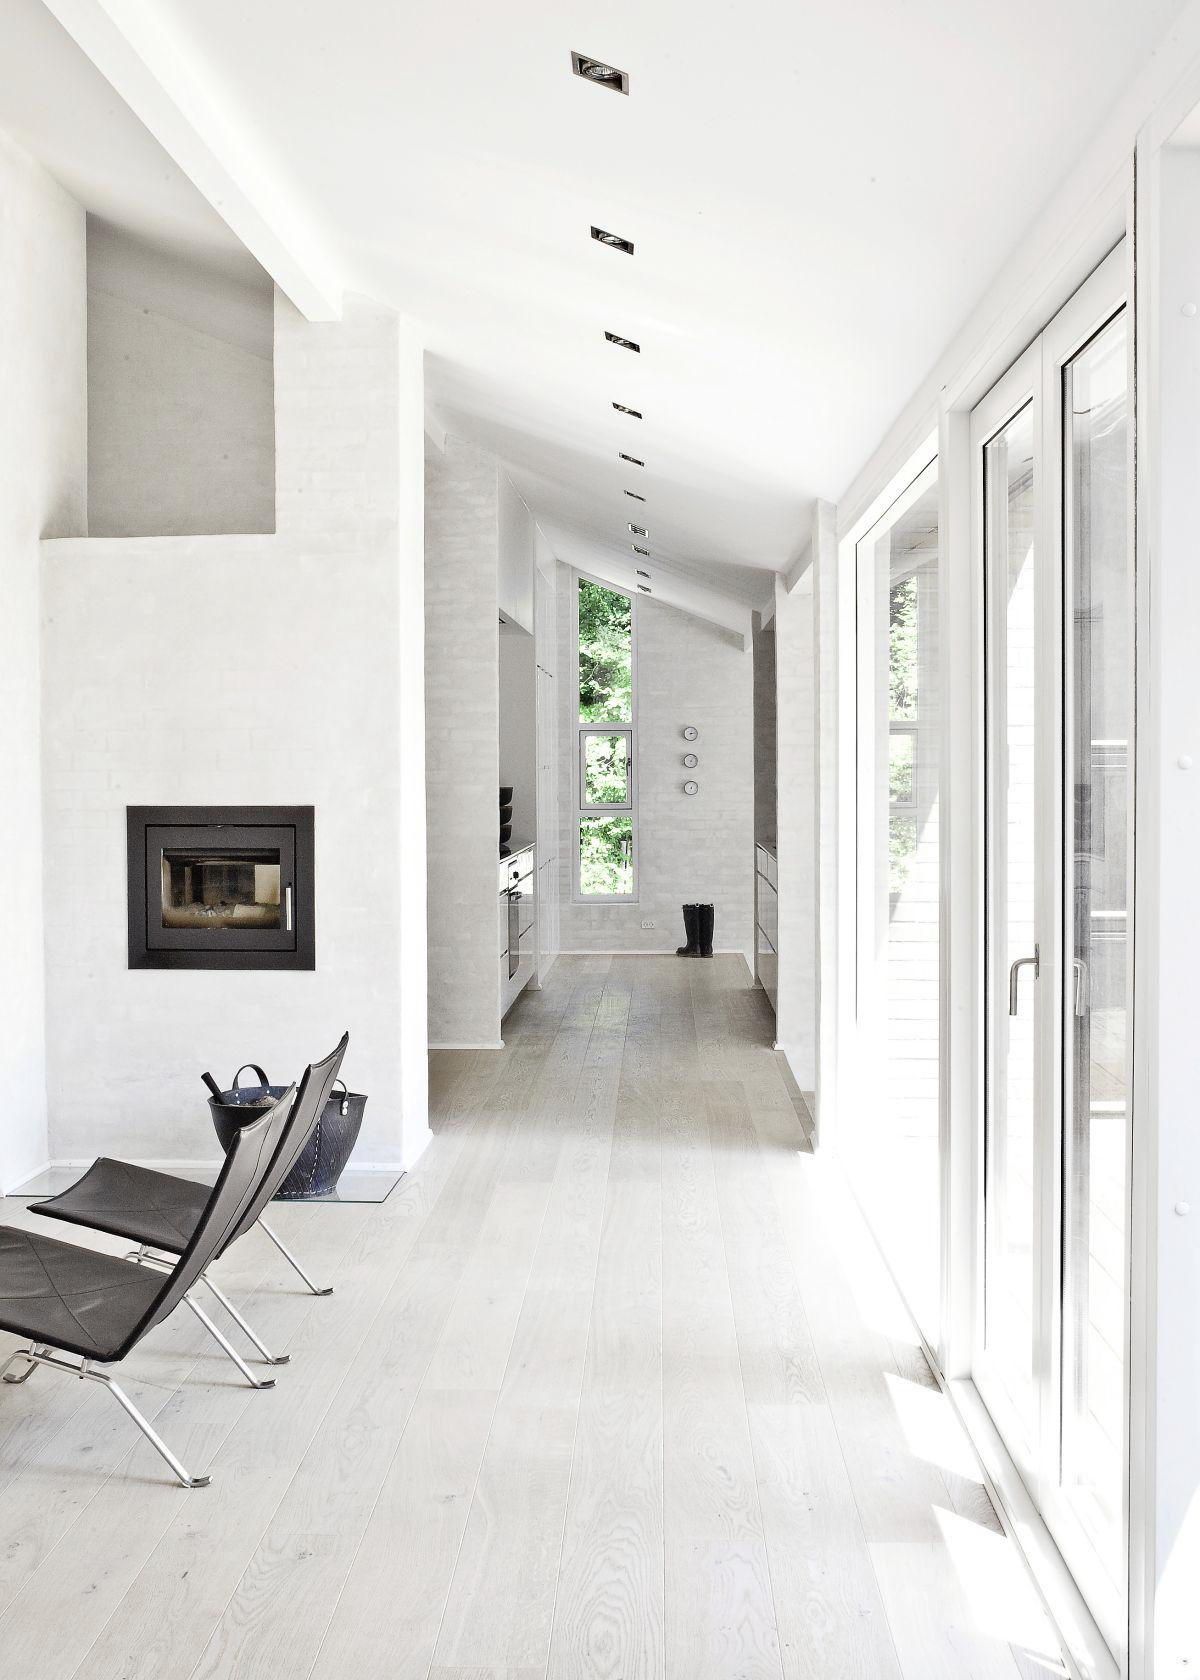 20 beautiful white homes to draw inspiration from hand luggage 20 amazingly beautiful white homes to draw inspiration from 19